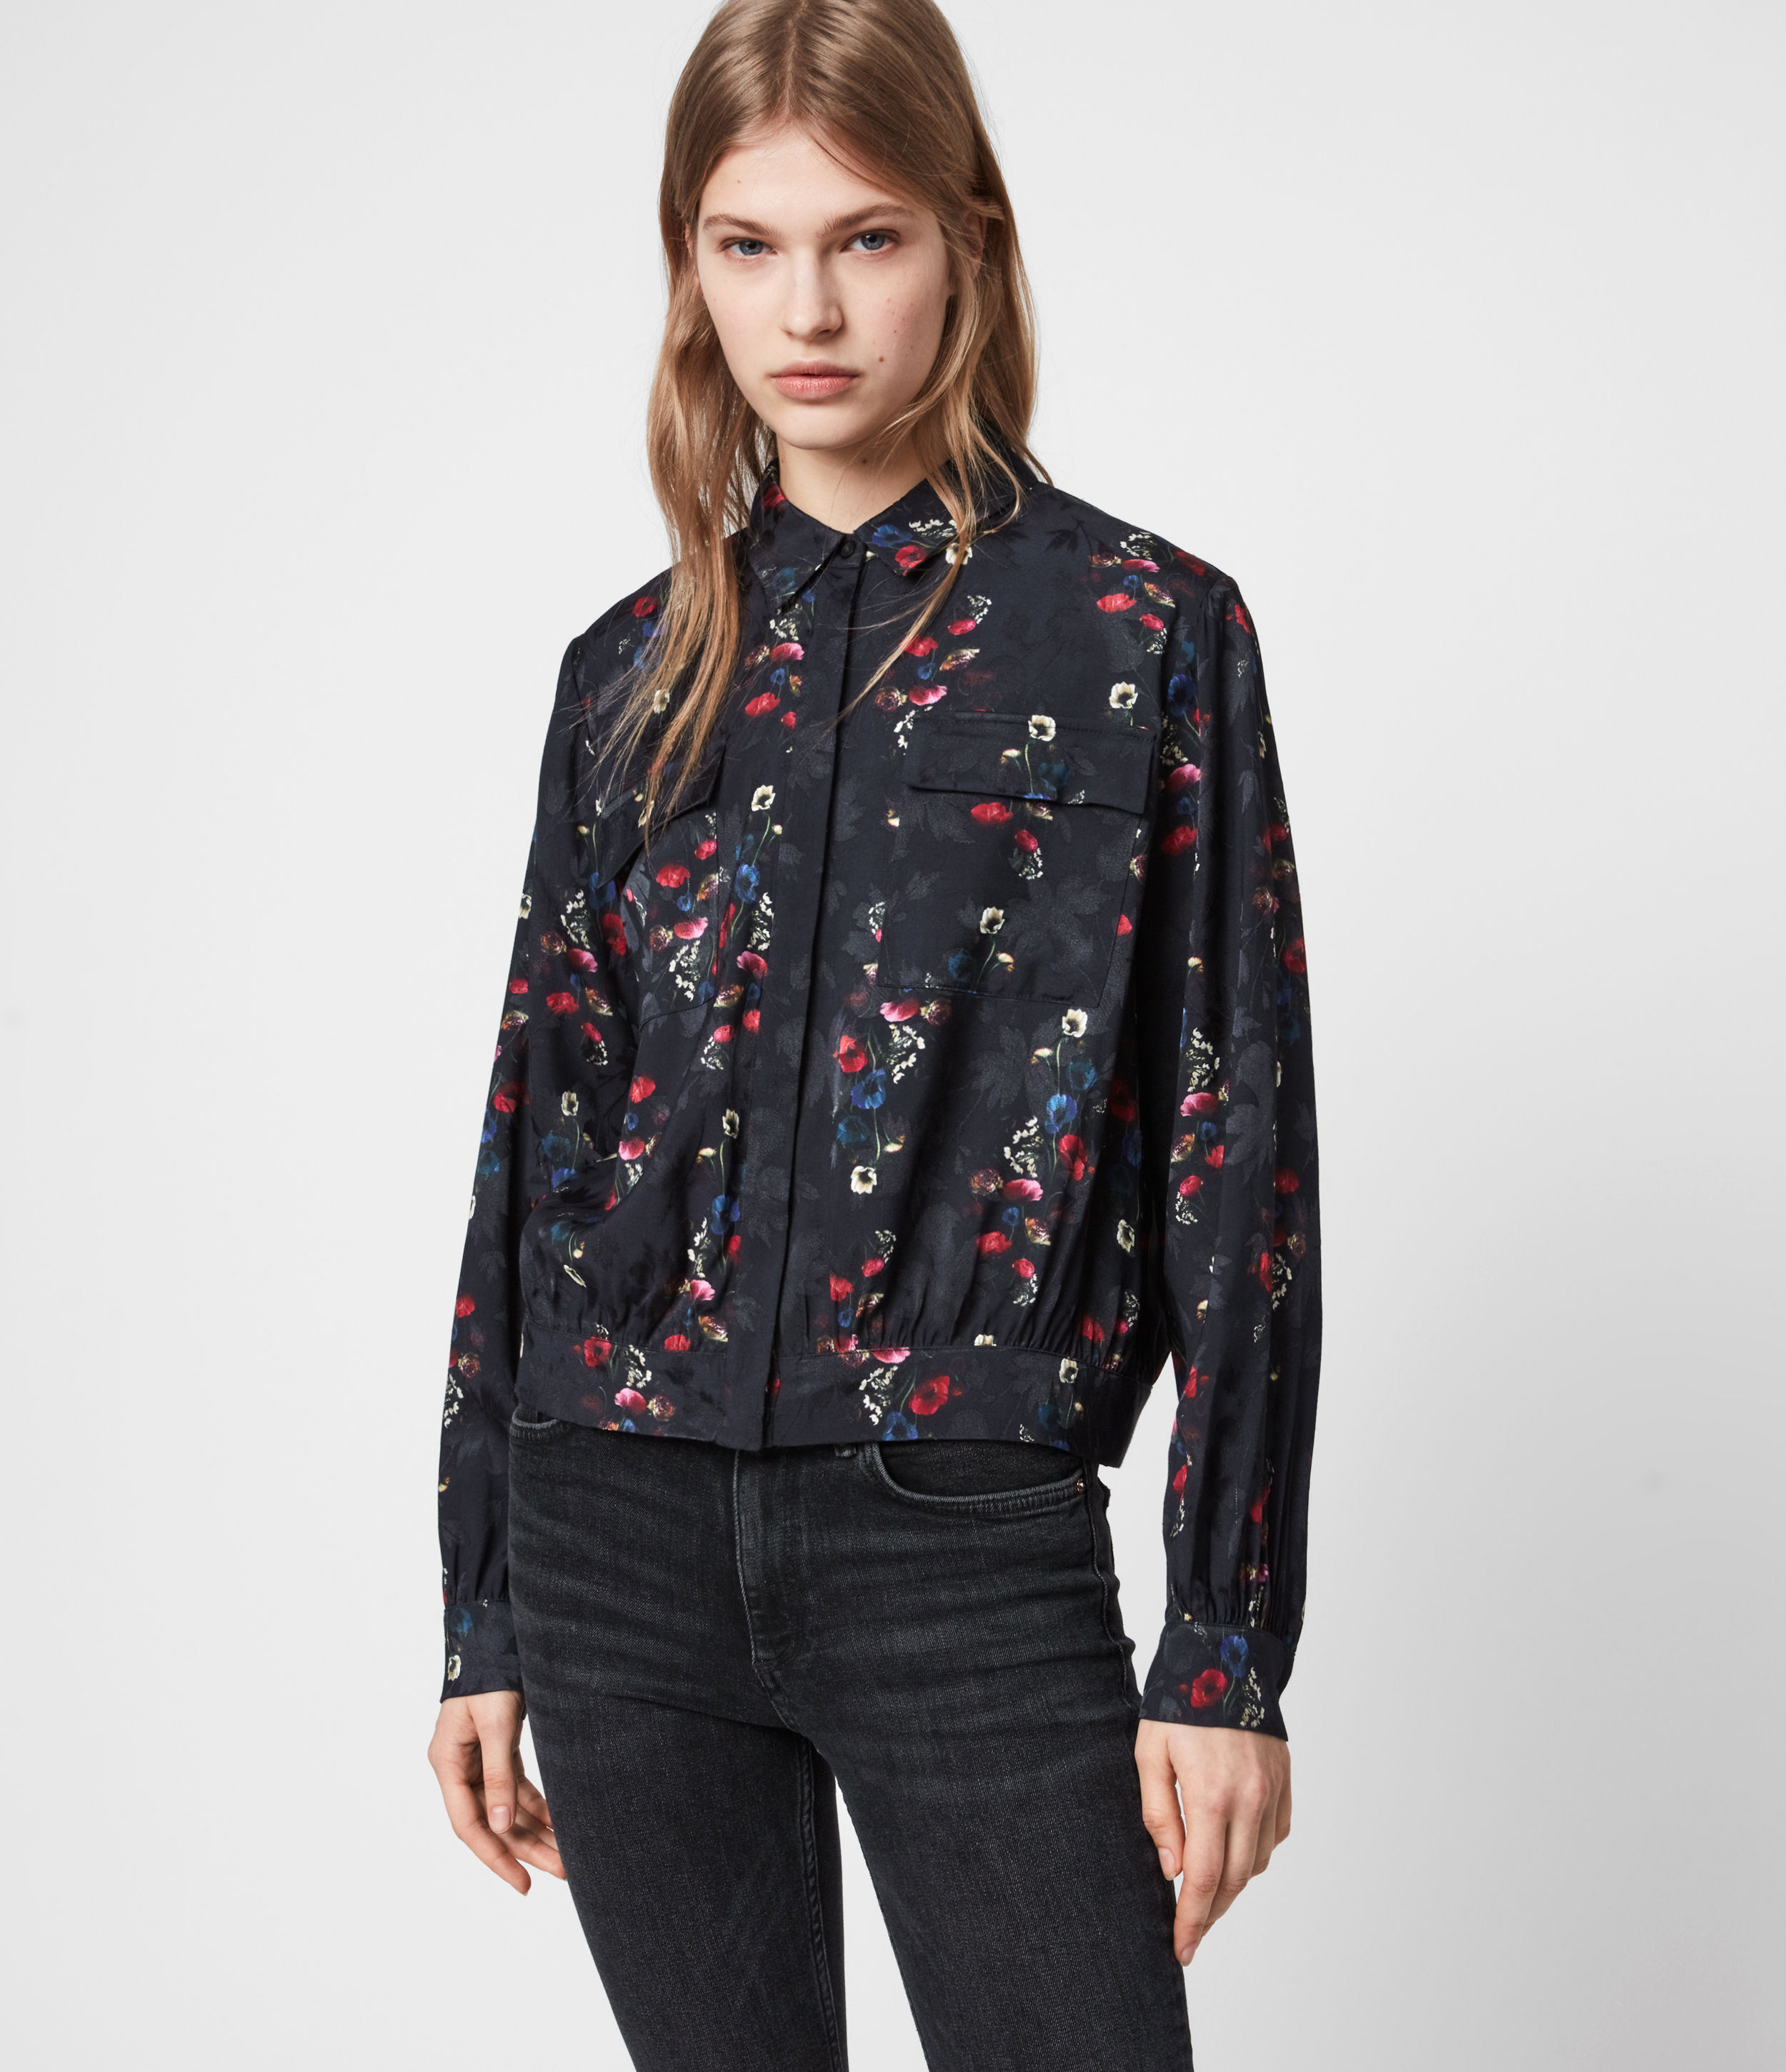 AllSaints Women's Floral Lightweight Adeliza Spirit Shirt, Black, Blue and Red, Size: XS